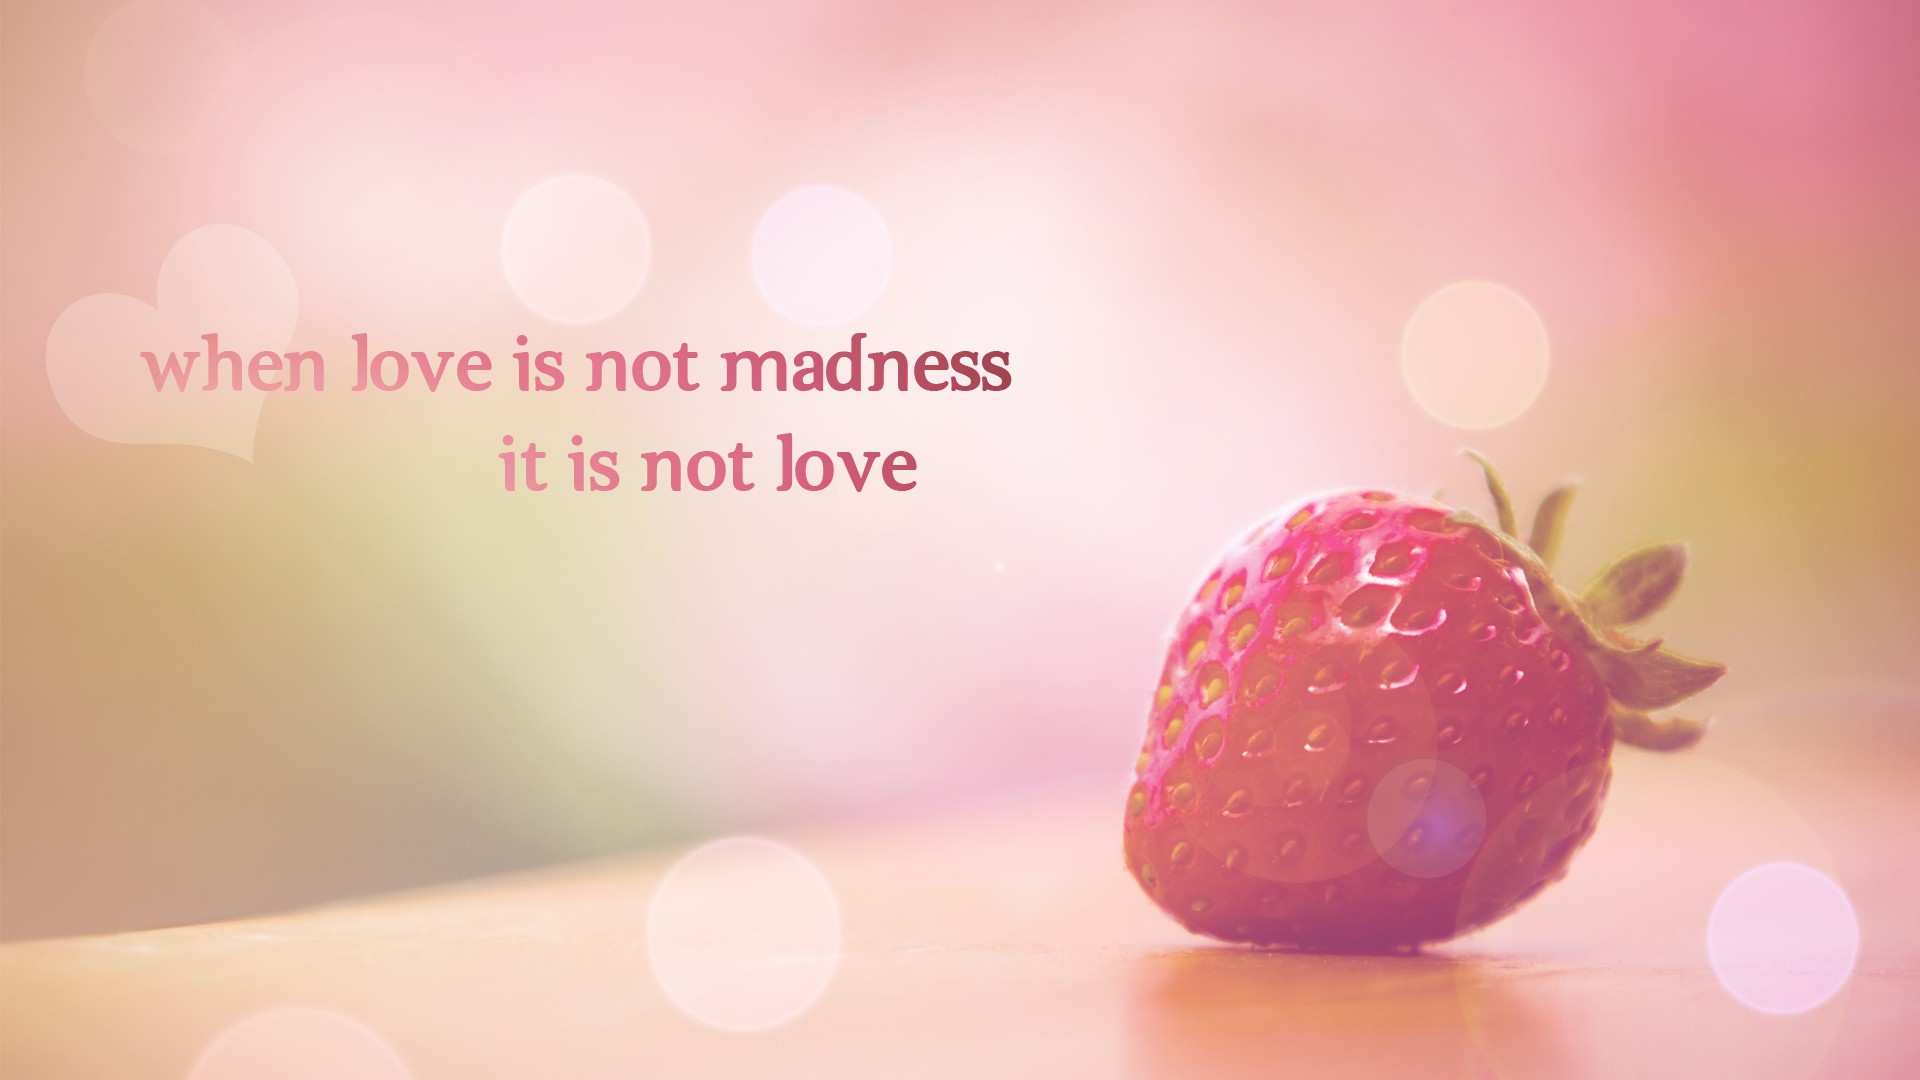 Love Quotes Wallpaper   Wallpaper High Definition High Quality 1920x1080